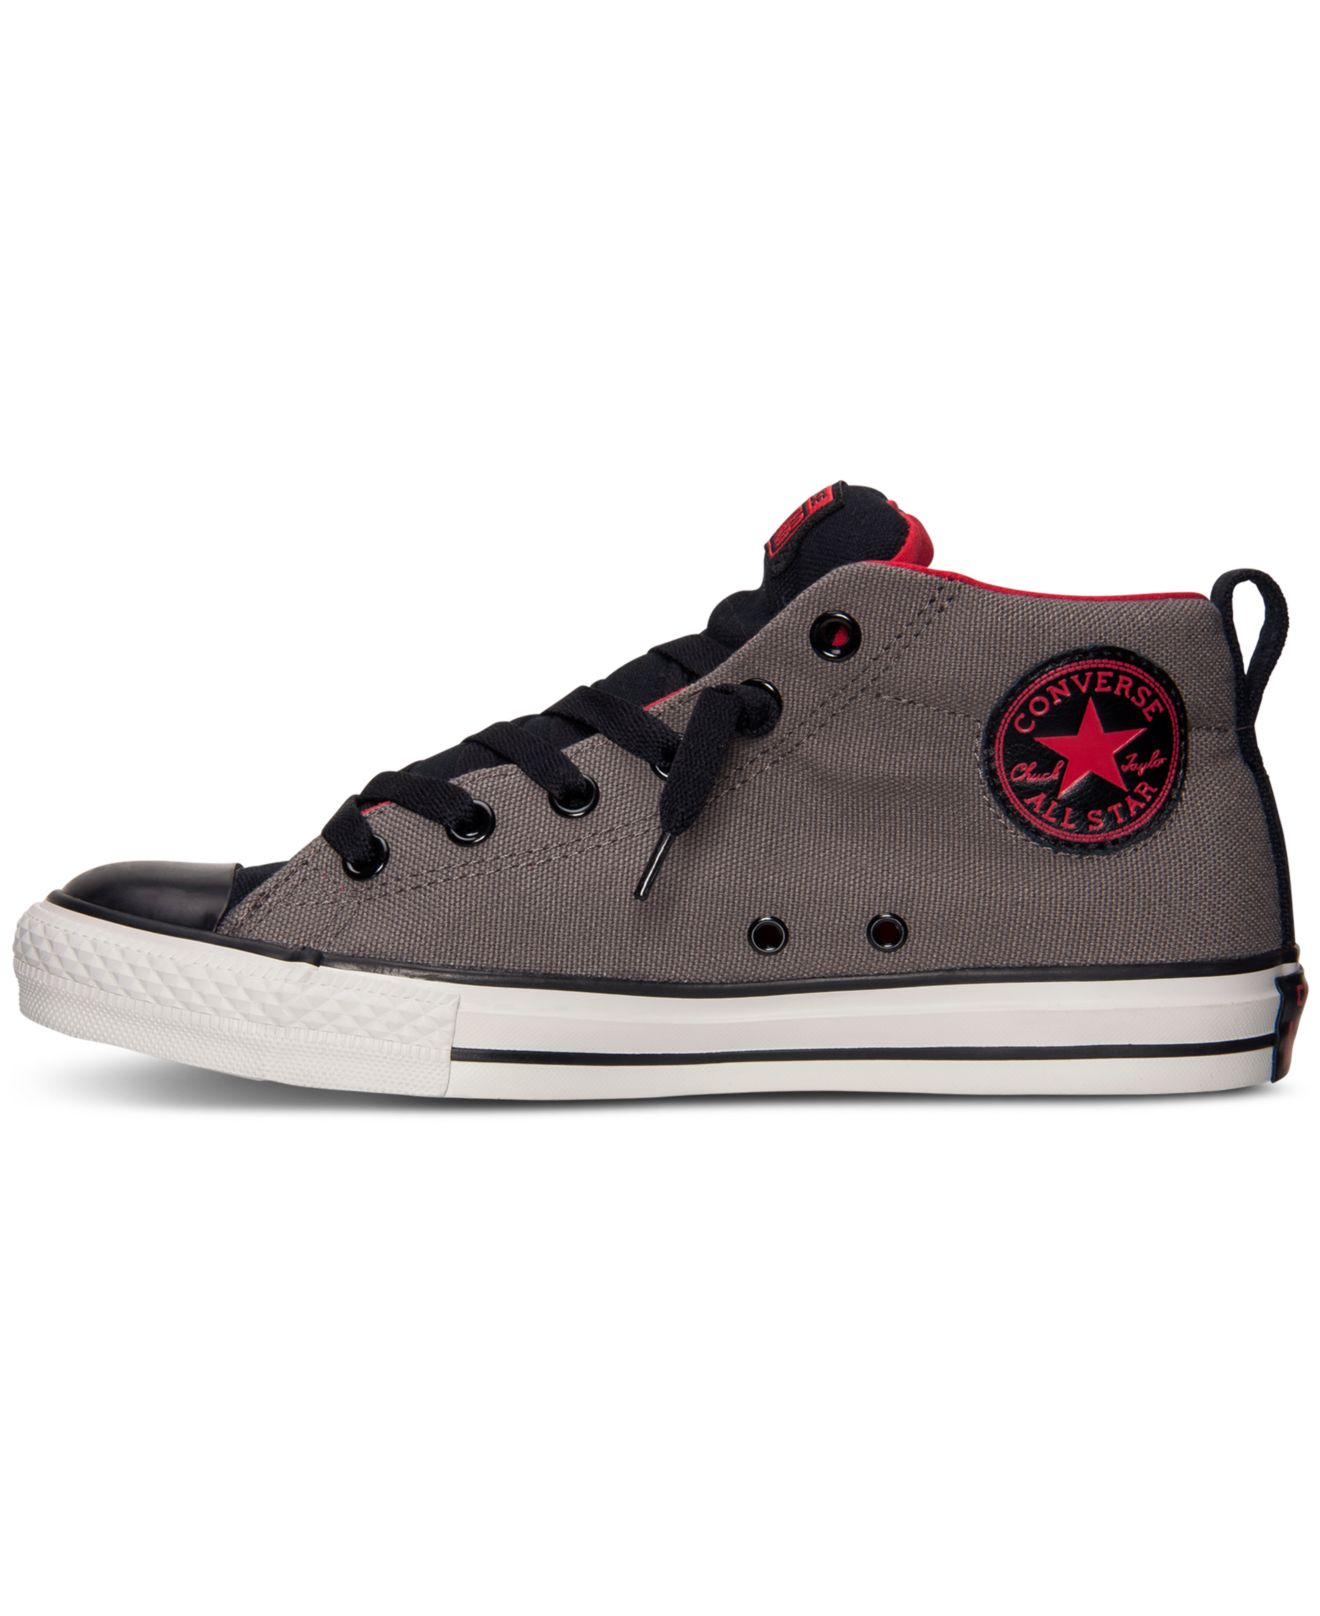 b4e1d8666db5 Lyst - Converse Men S Chuck Taylor Street Mid Casual Sneakers From ...